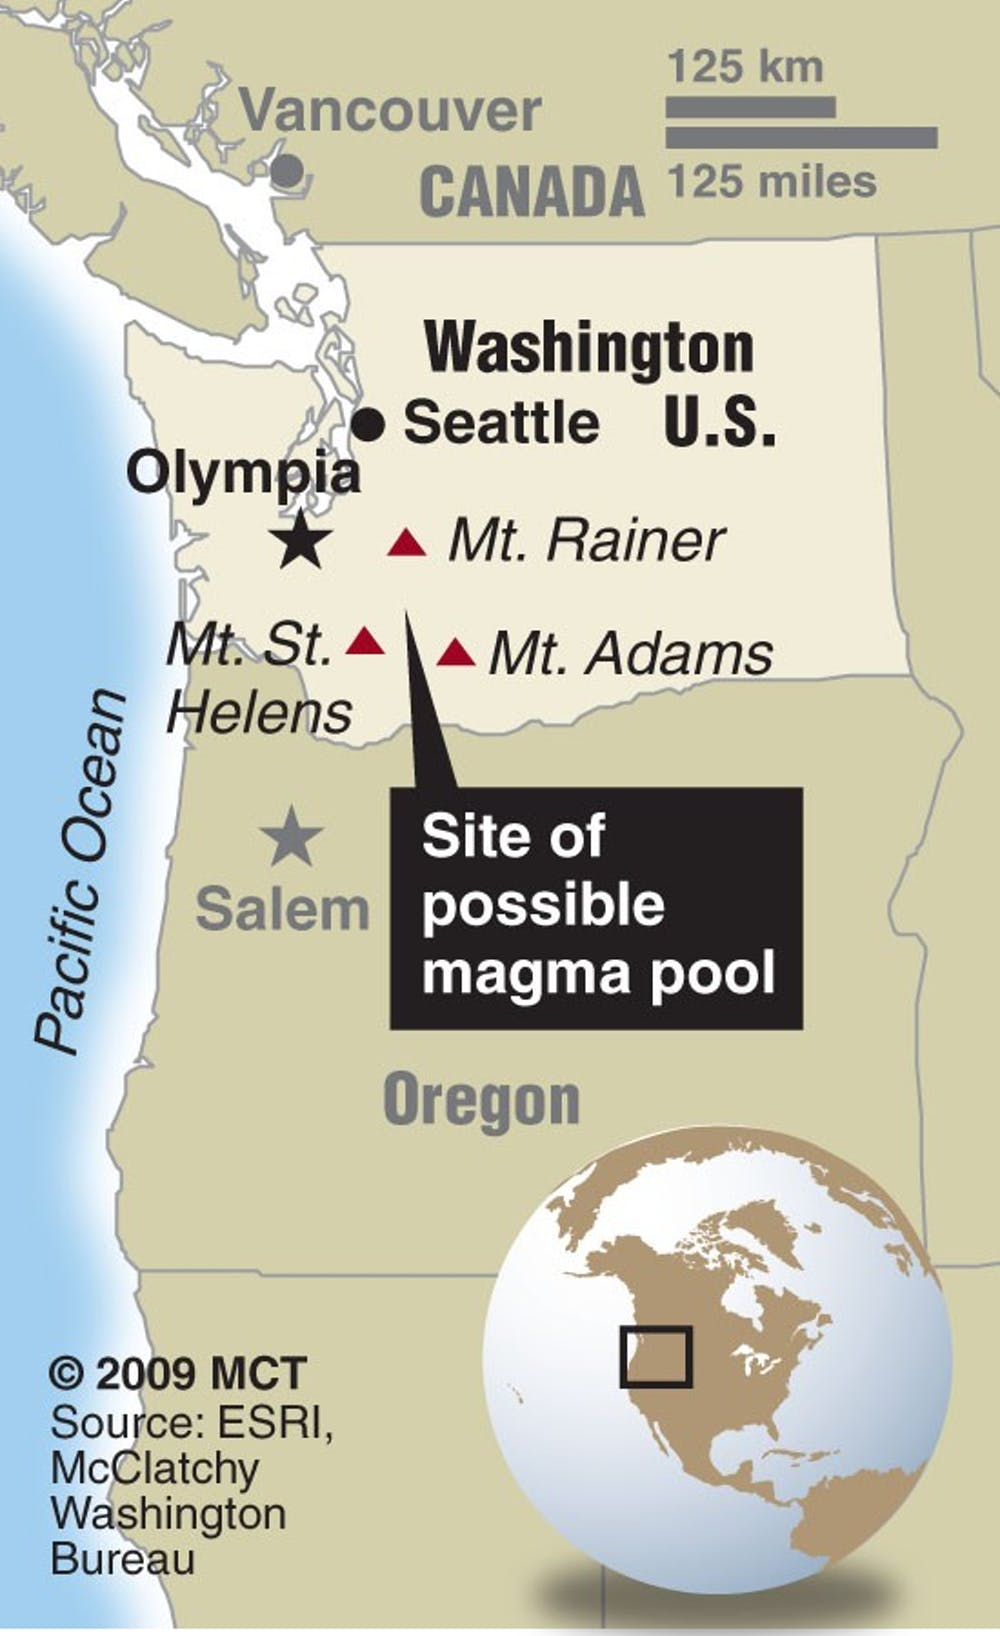 Cascades could hide large magma pool